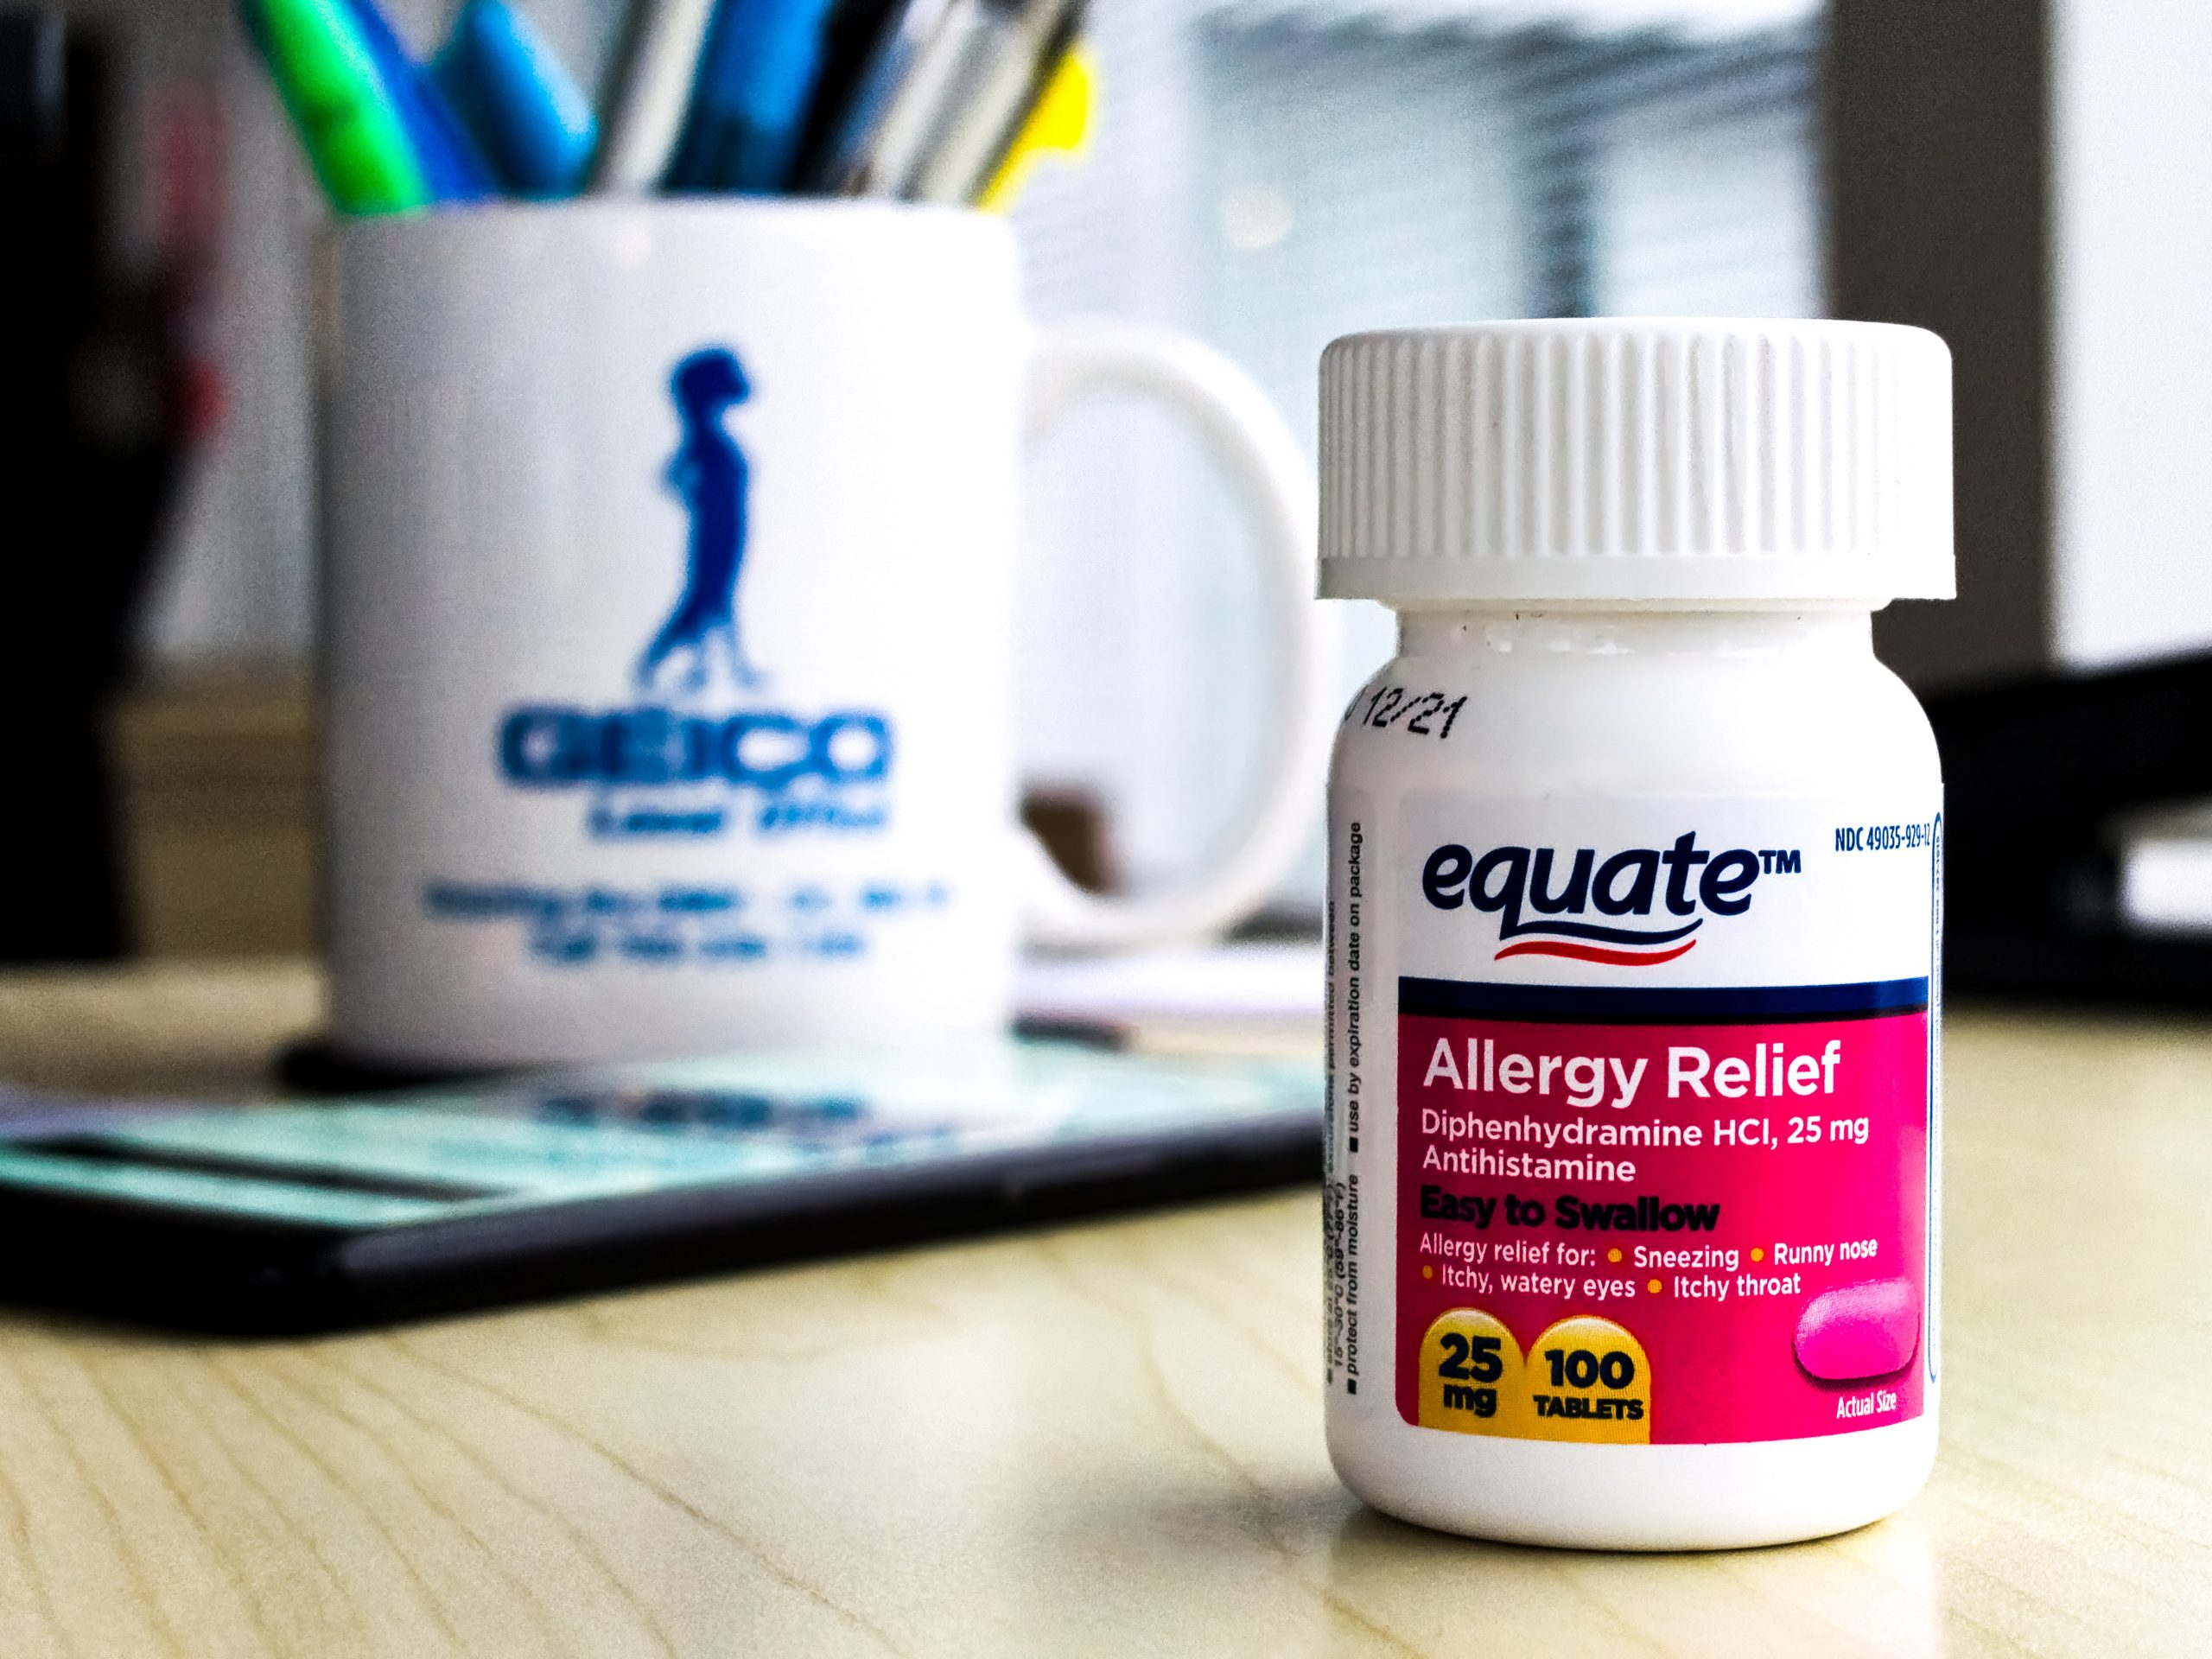 A bottle of equate brand allergy medicine on an office desk in daylight, with a Geico mug and Google Pixel 3XL in the background.